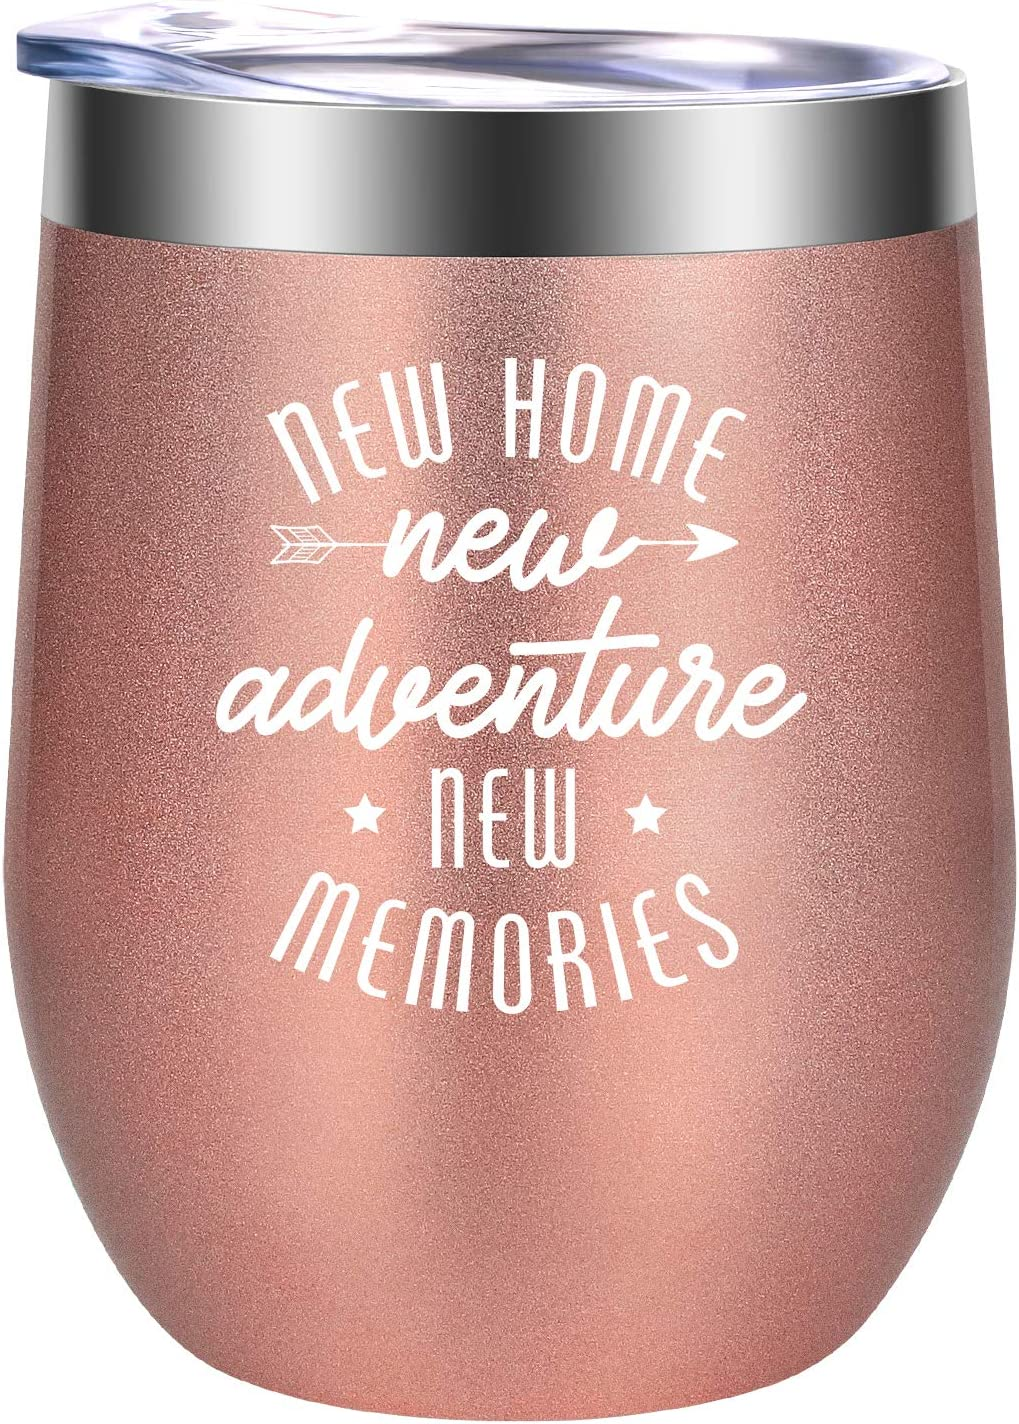 Housewarming Gifts for Women - Low price Portland Mall Homeowner Funny Moving New